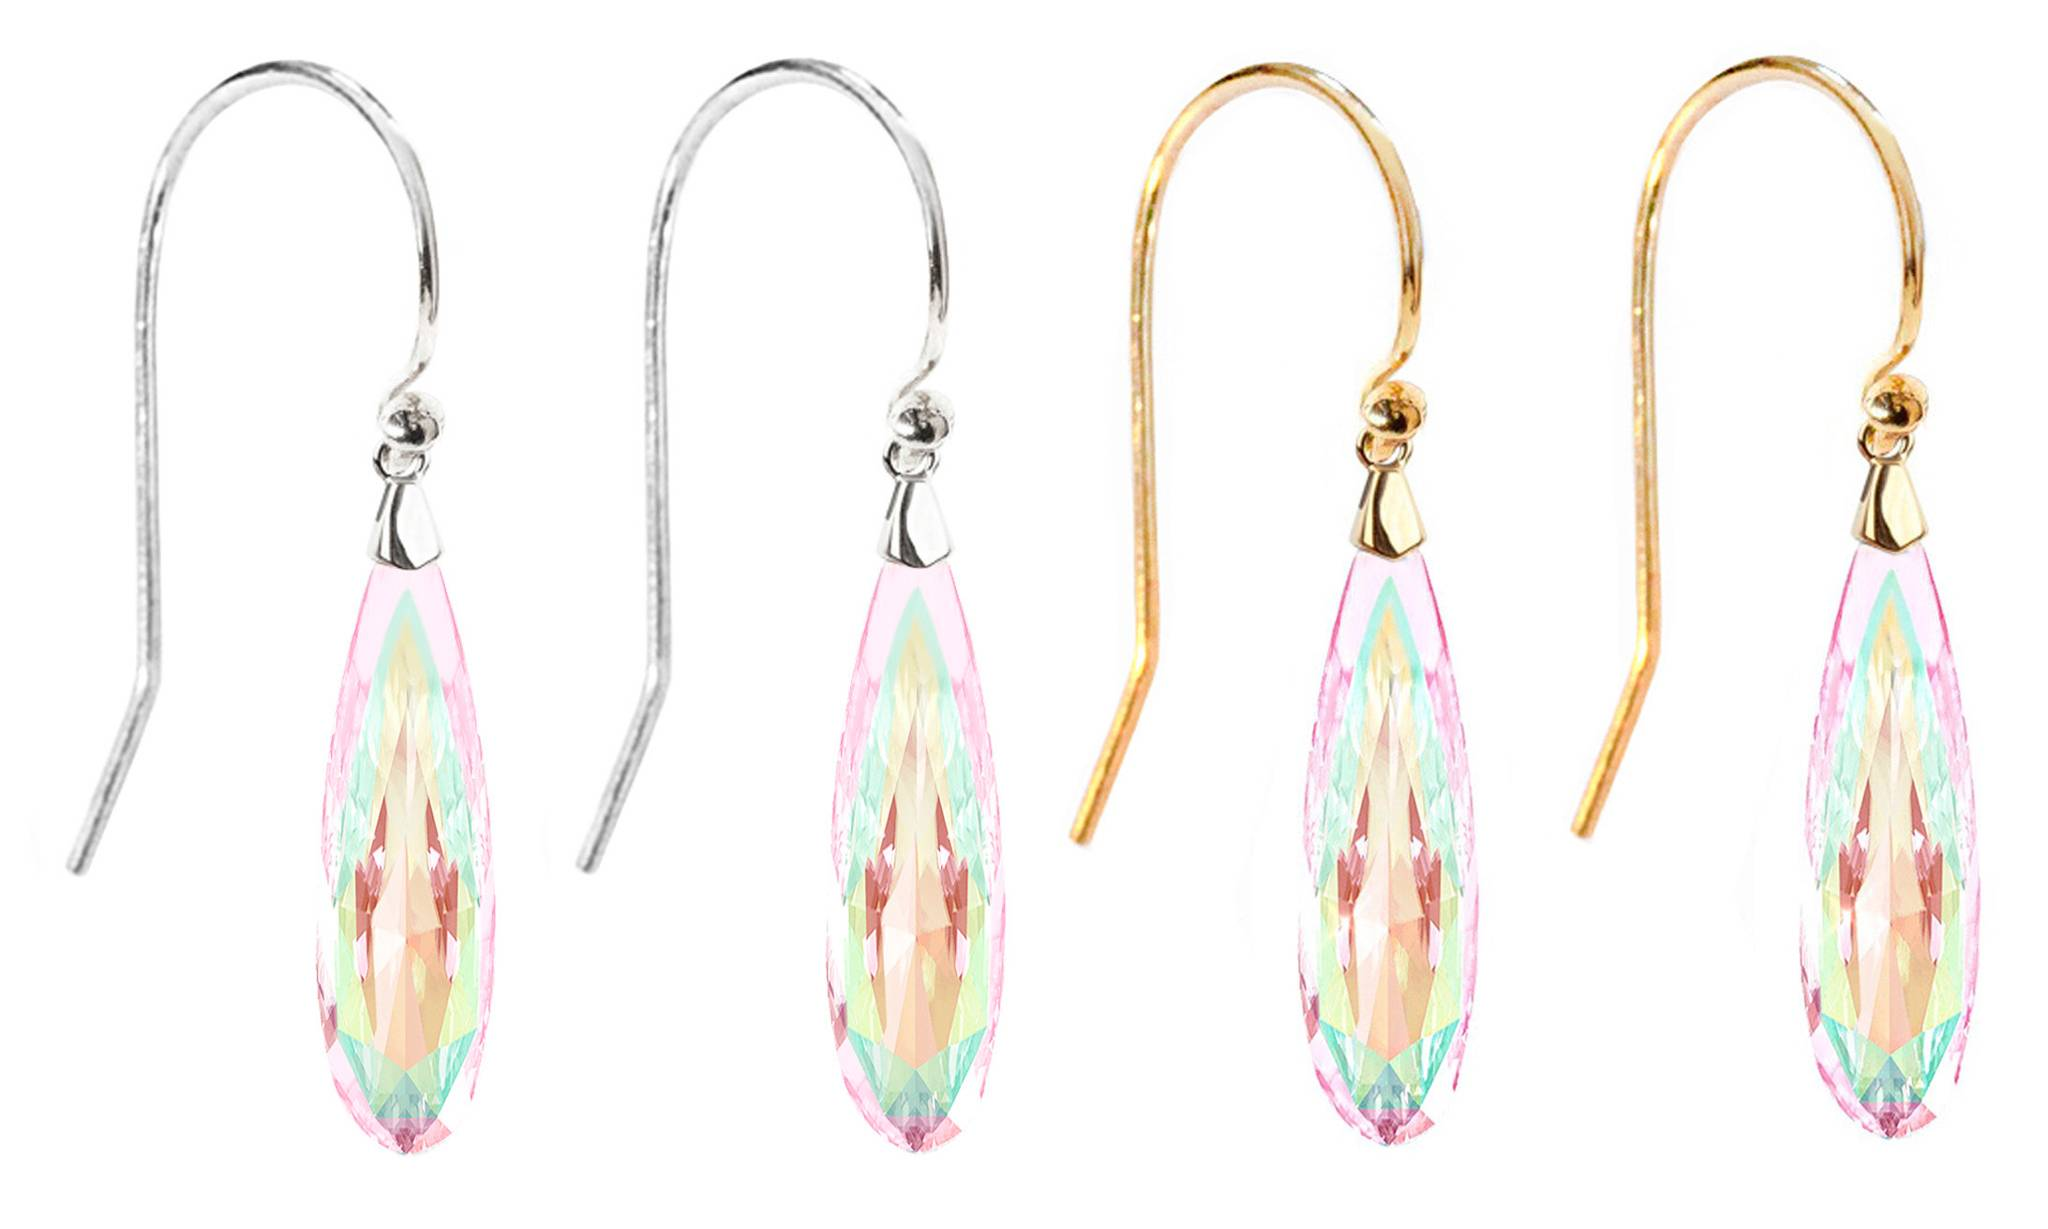 Ah! Jewellery® Ah! Jewellery® Sterling Silver Raindrop Earrings: Aurore Boreale on Gold and Aurore Boreale on Silver